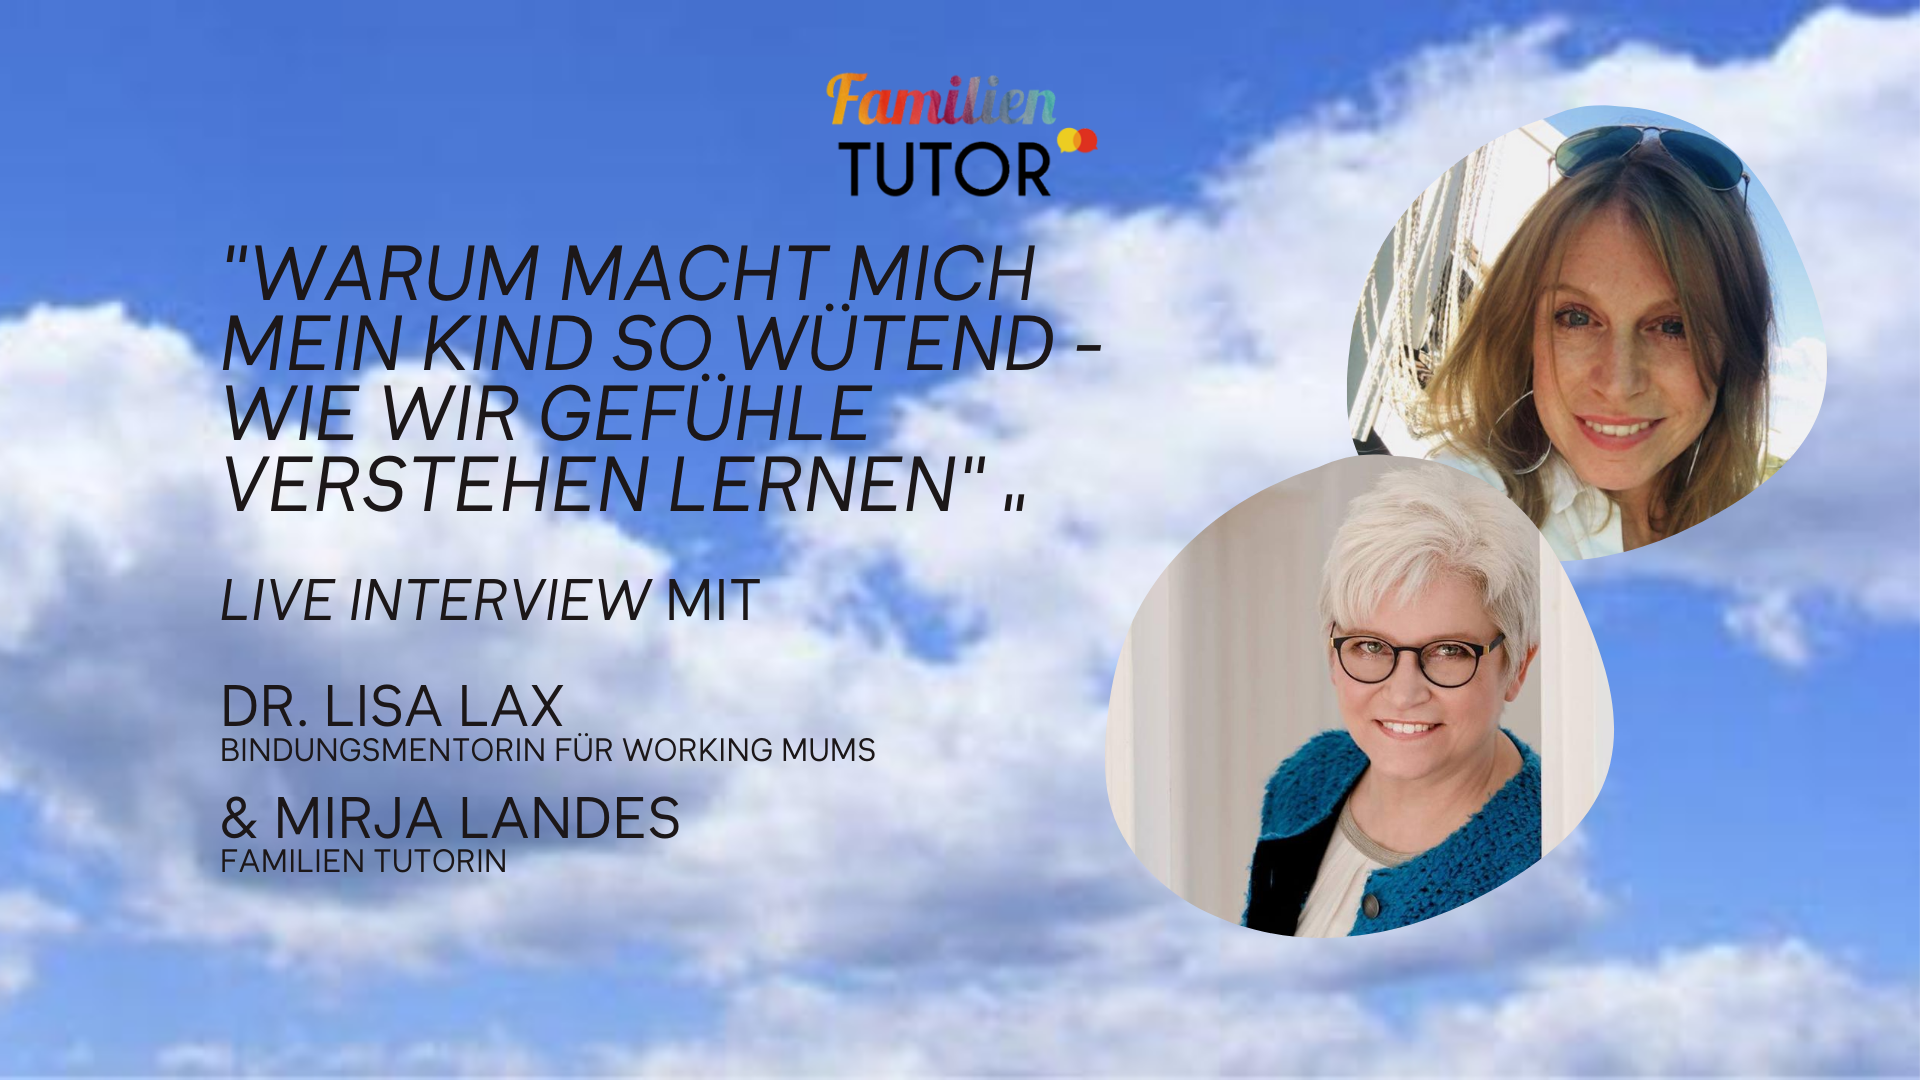 Family Friday Tutorial mit Dr. Lisa Lax